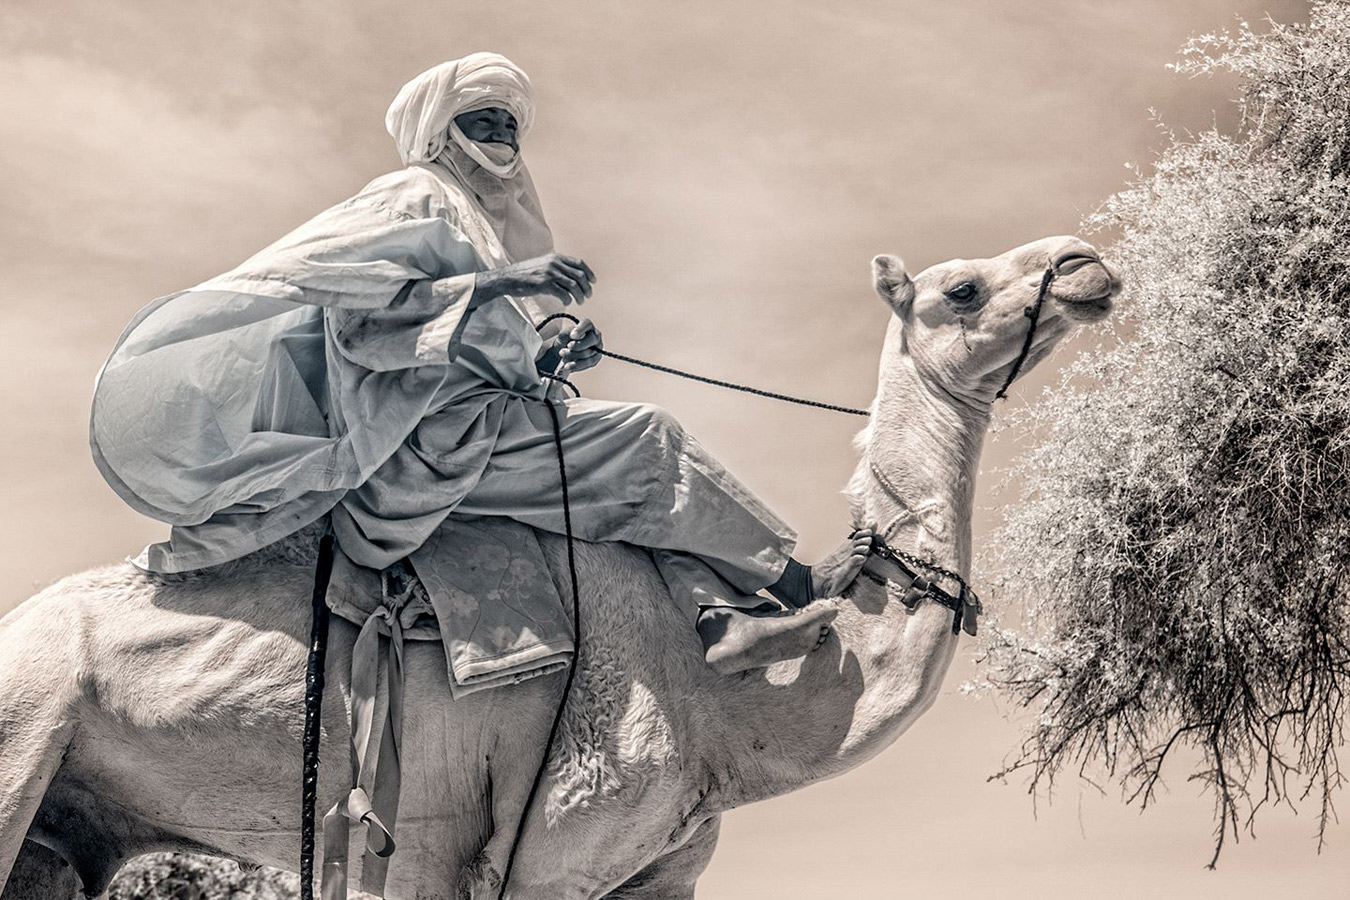 From the series: Terri Gold: 1000 Nomads